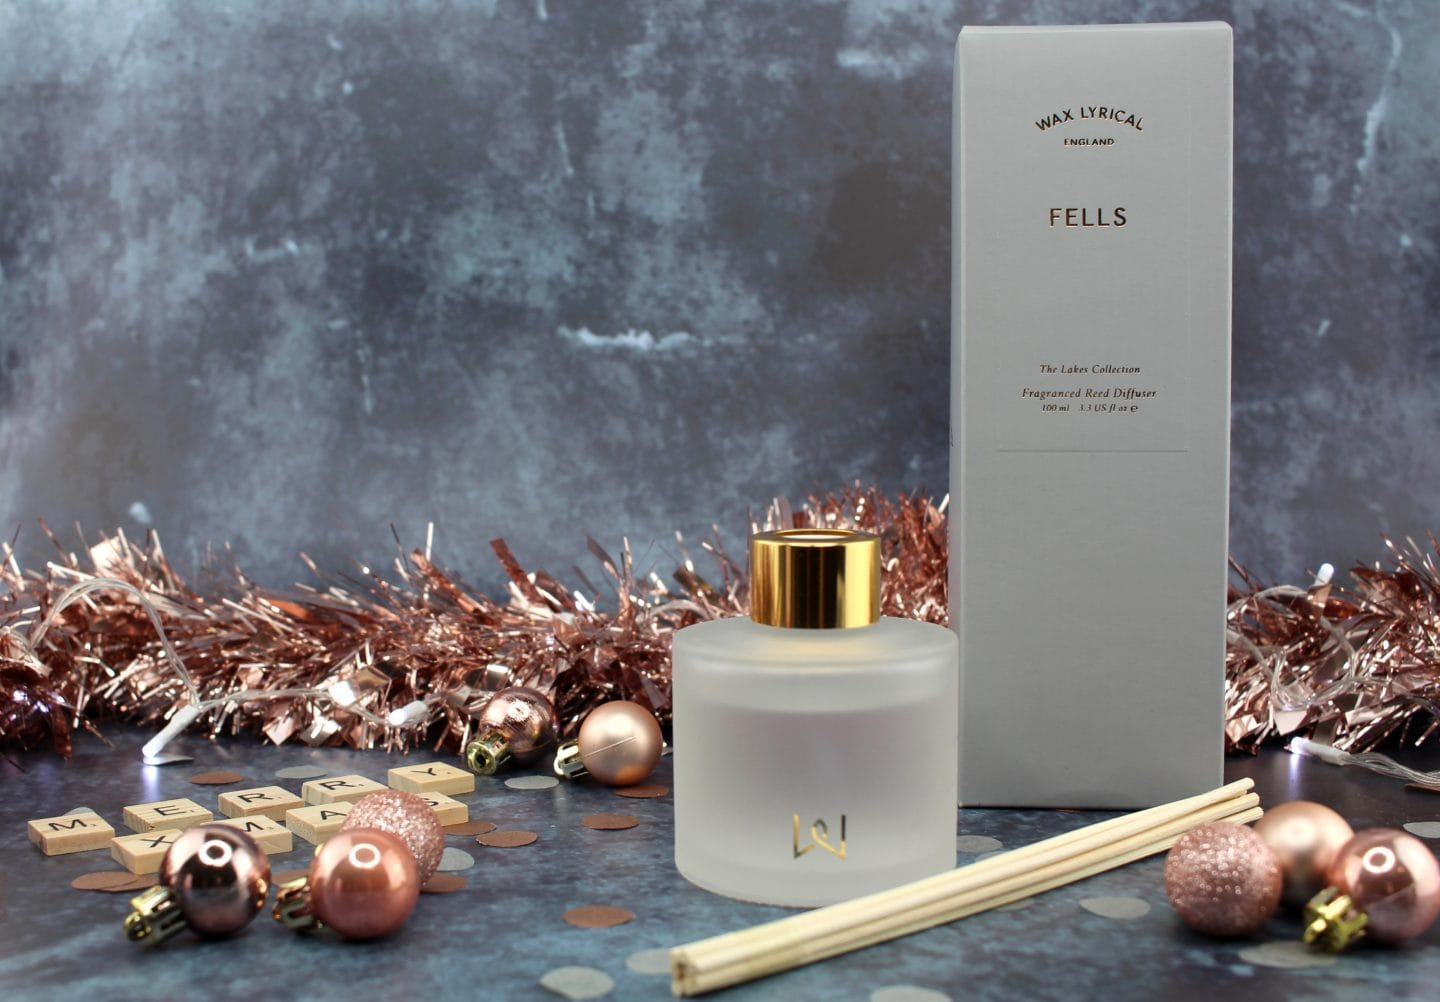 Fells Reed Diffuser Wax Lyrical